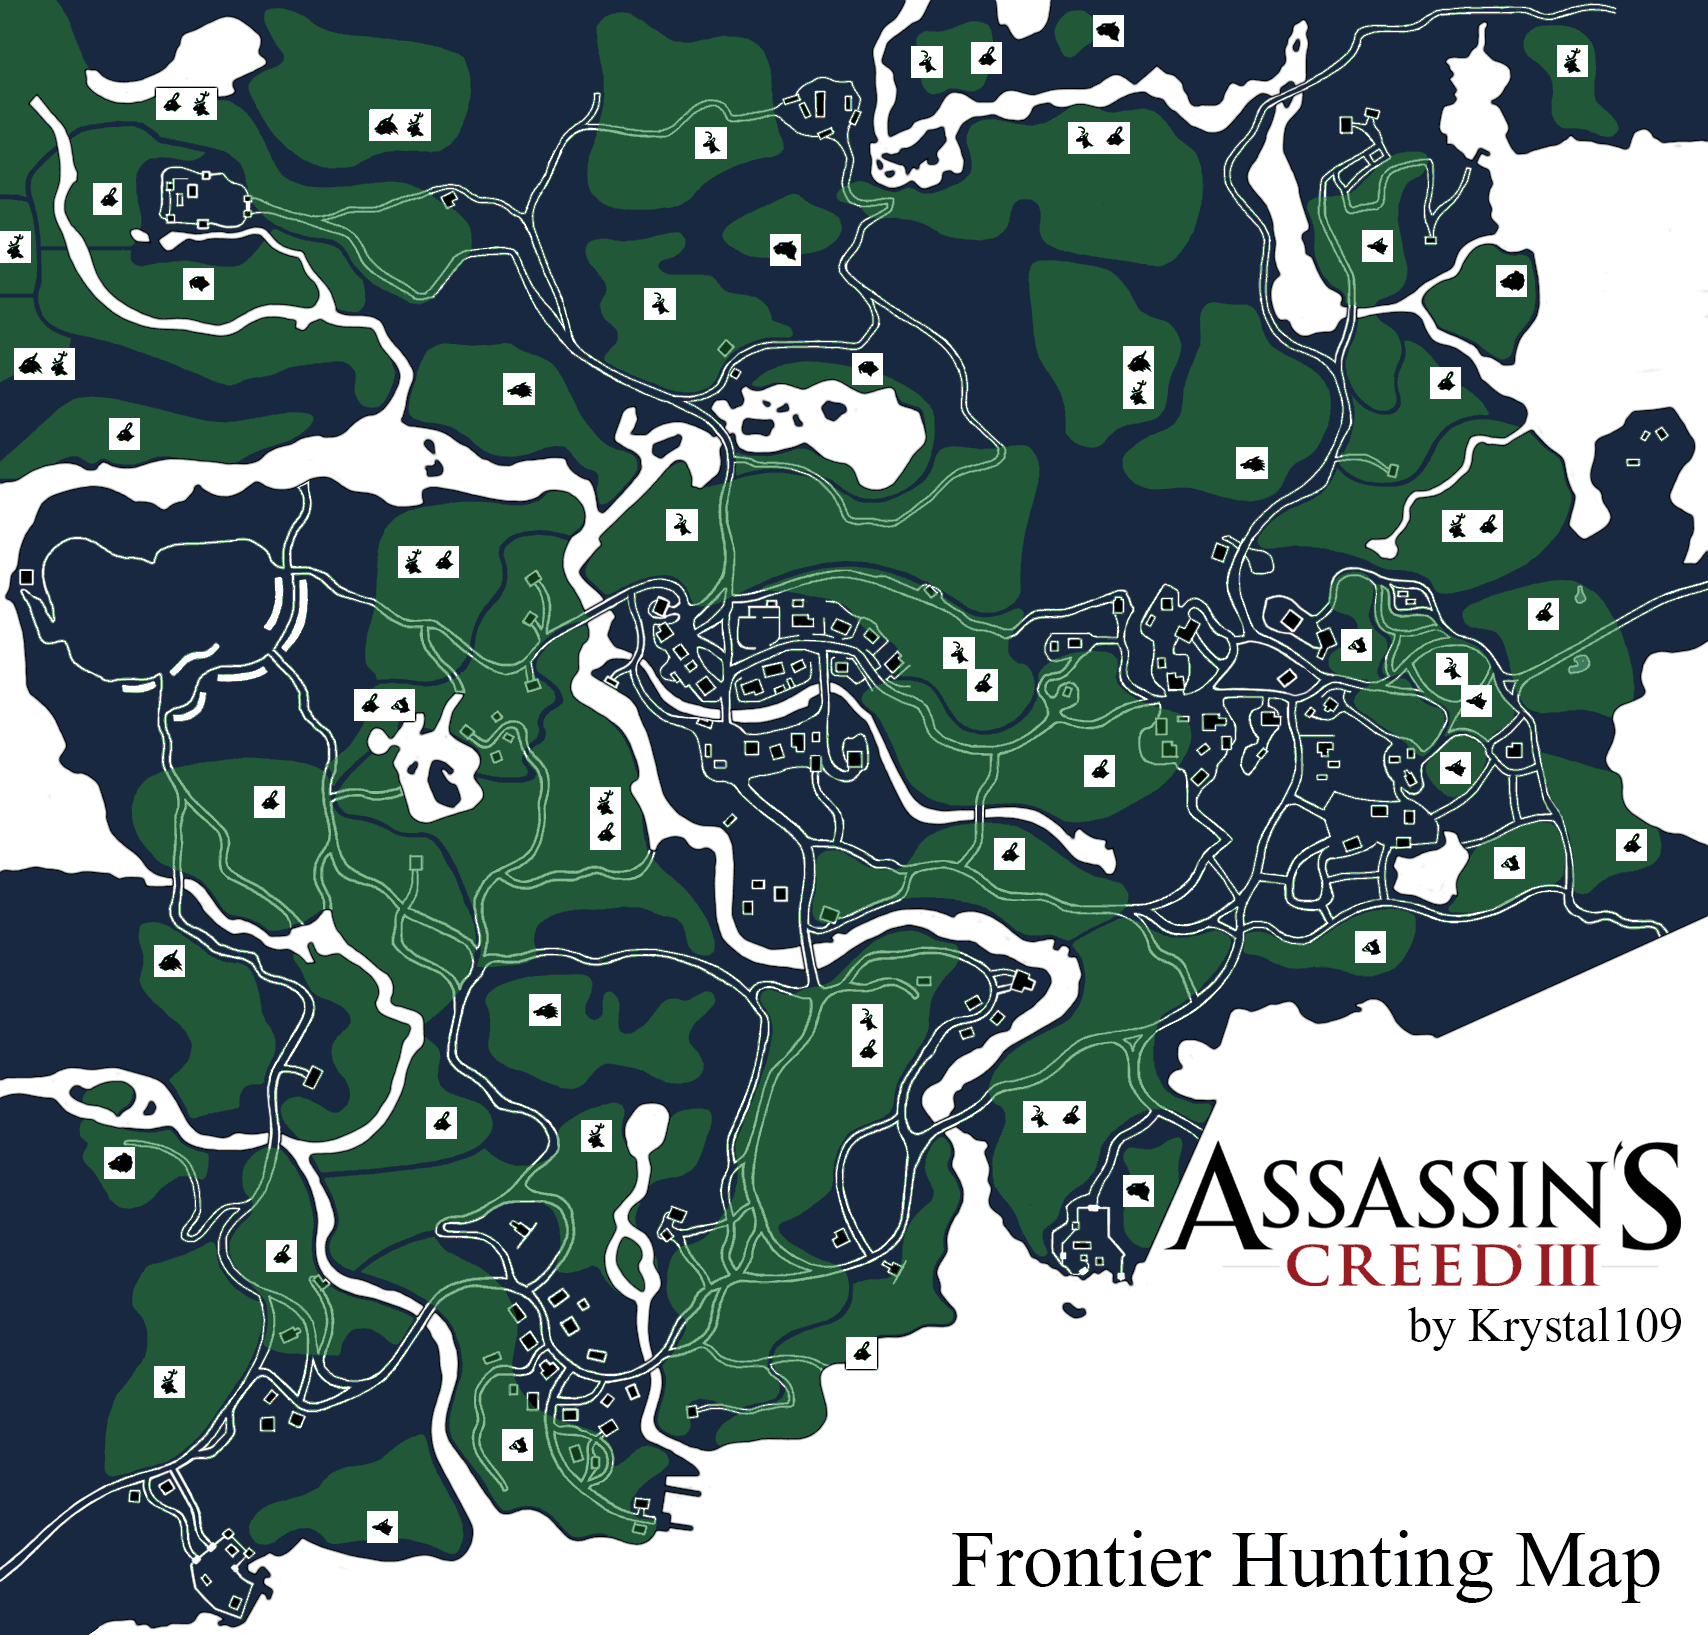 Assassin\\\\\\\\\\\\\\\\\\\\\\\\\\\\\\\'s Creed 3 Map Assassin's Creed III Frontier Hunting Map (PNG) v1.5   Neoseeker  Assassin\\\\\\\\\\\\\\\\\\\\\\\\\\\\\\\'s Creed 3 Map